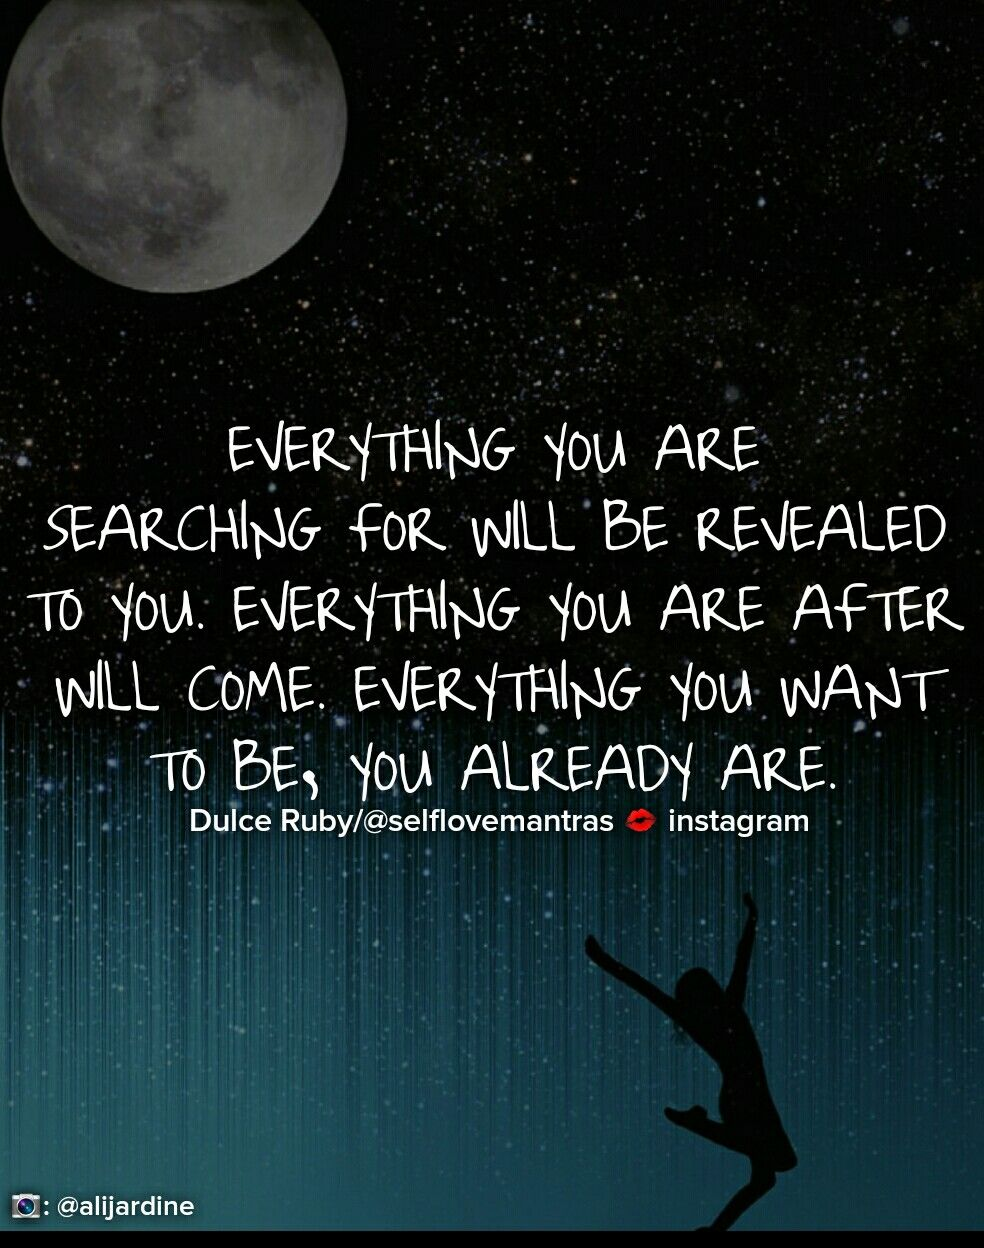 Everything will be okay 💋 #selflovemantras #love #iloveme #selflove #quote #quotes #quoteoftheday #mottos #mantra #inspire #inspiration